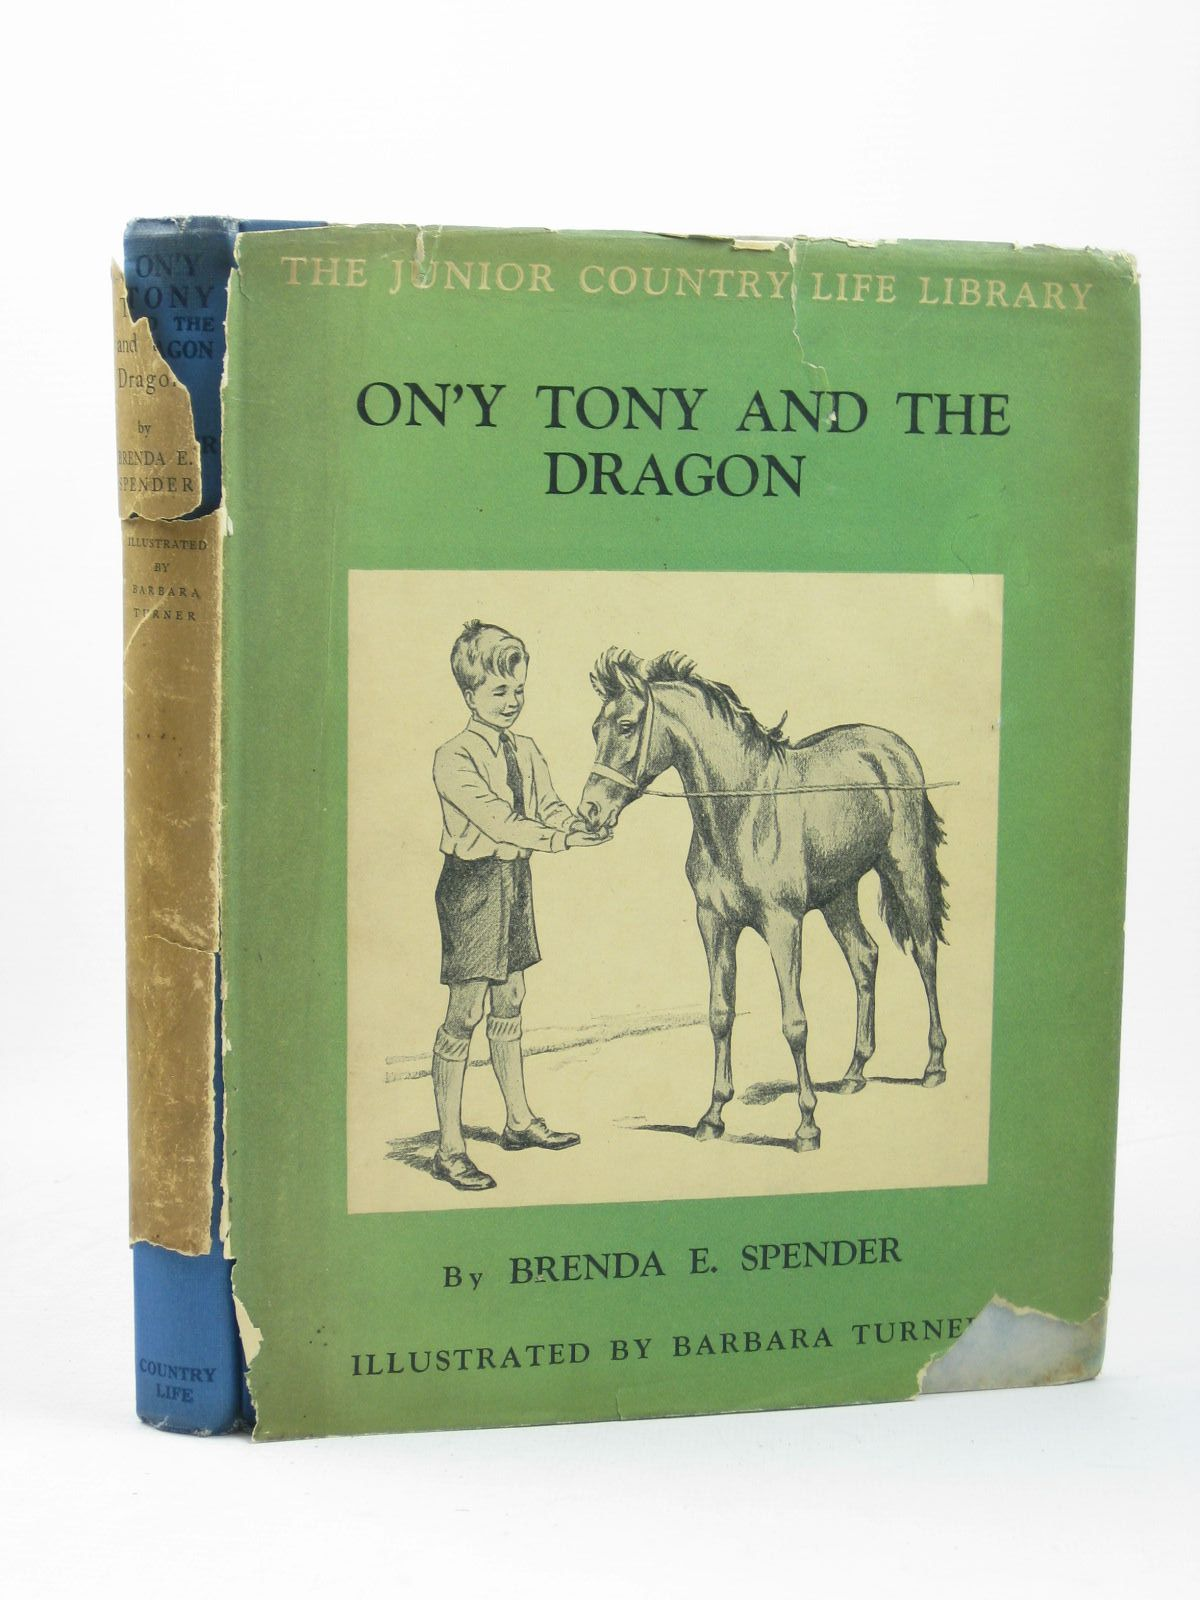 Cover of ON'Y TONY AND THE DRAGON by Brenda E. Spender